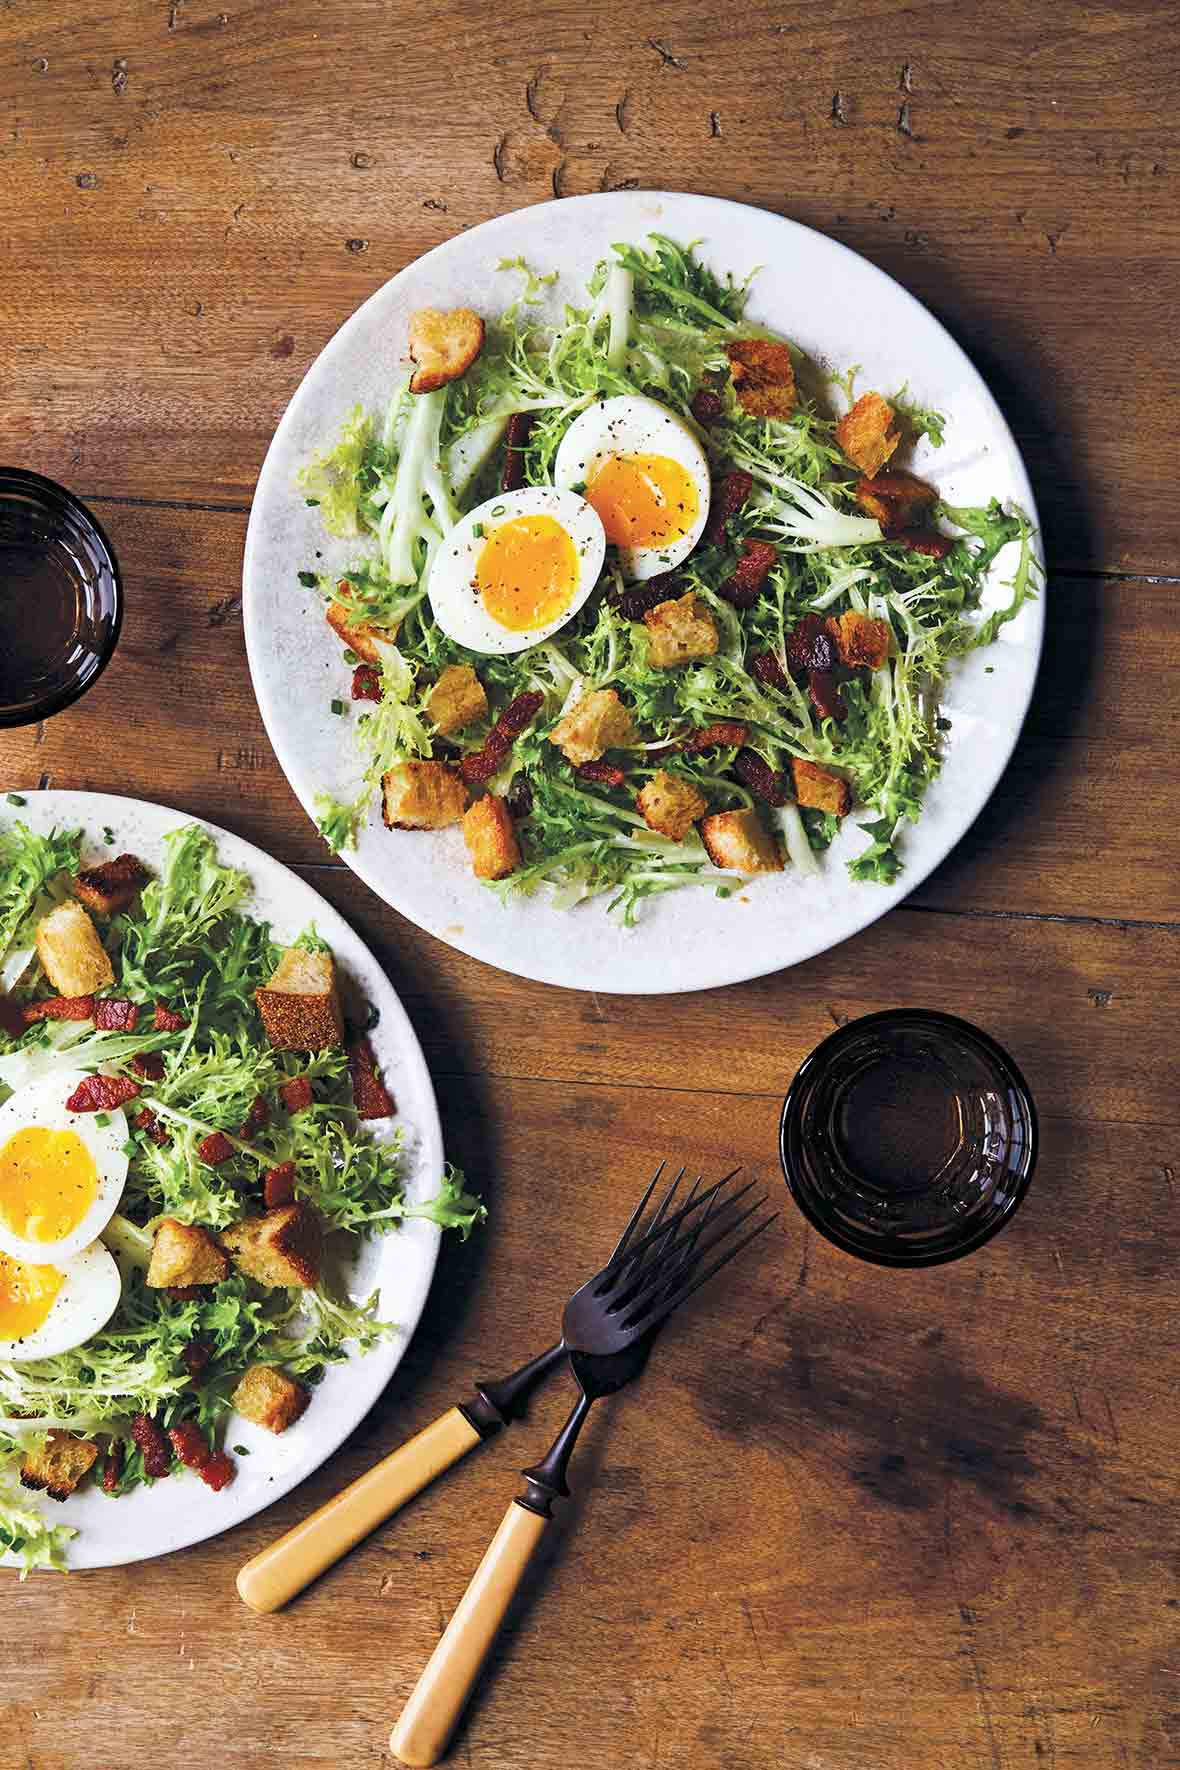 Two white plates of frisee salad with bacon and egg, croutons, and a dressing, glasses and fork and knife nearby